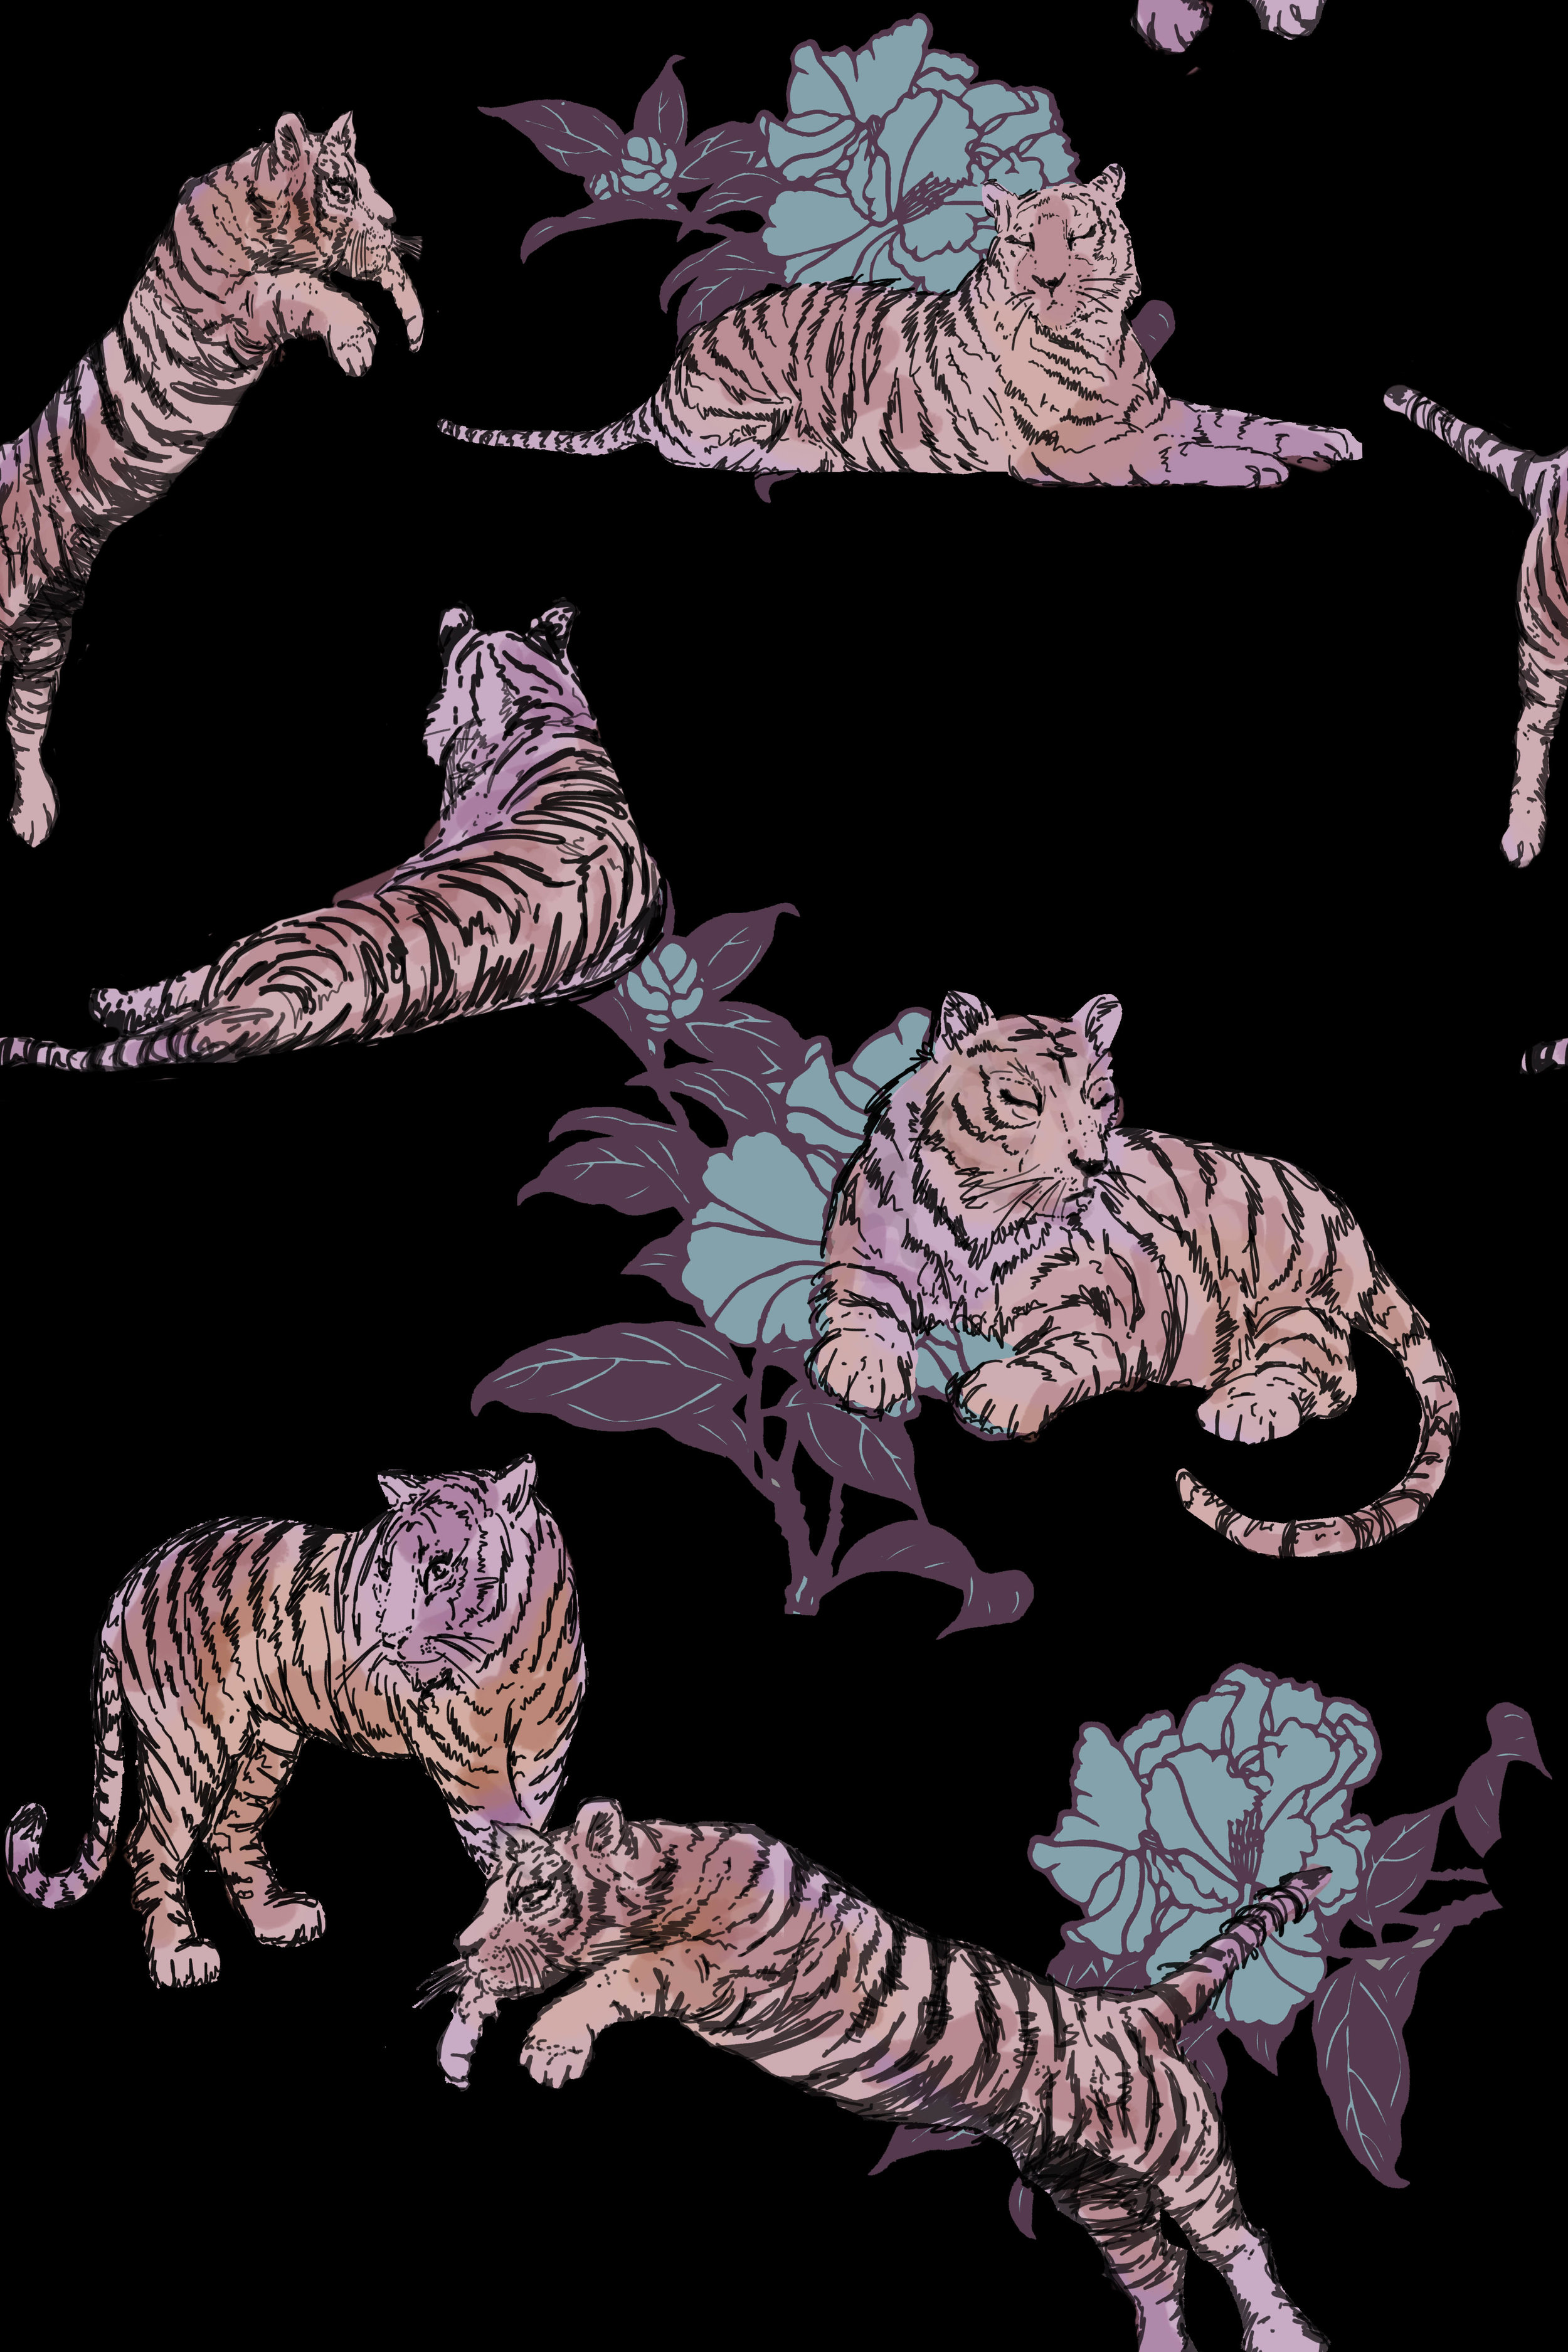 Delicious details. Each tiger is hand-drawn and hand-tinted using watercolour brushes underneath the line work on Photoshop.